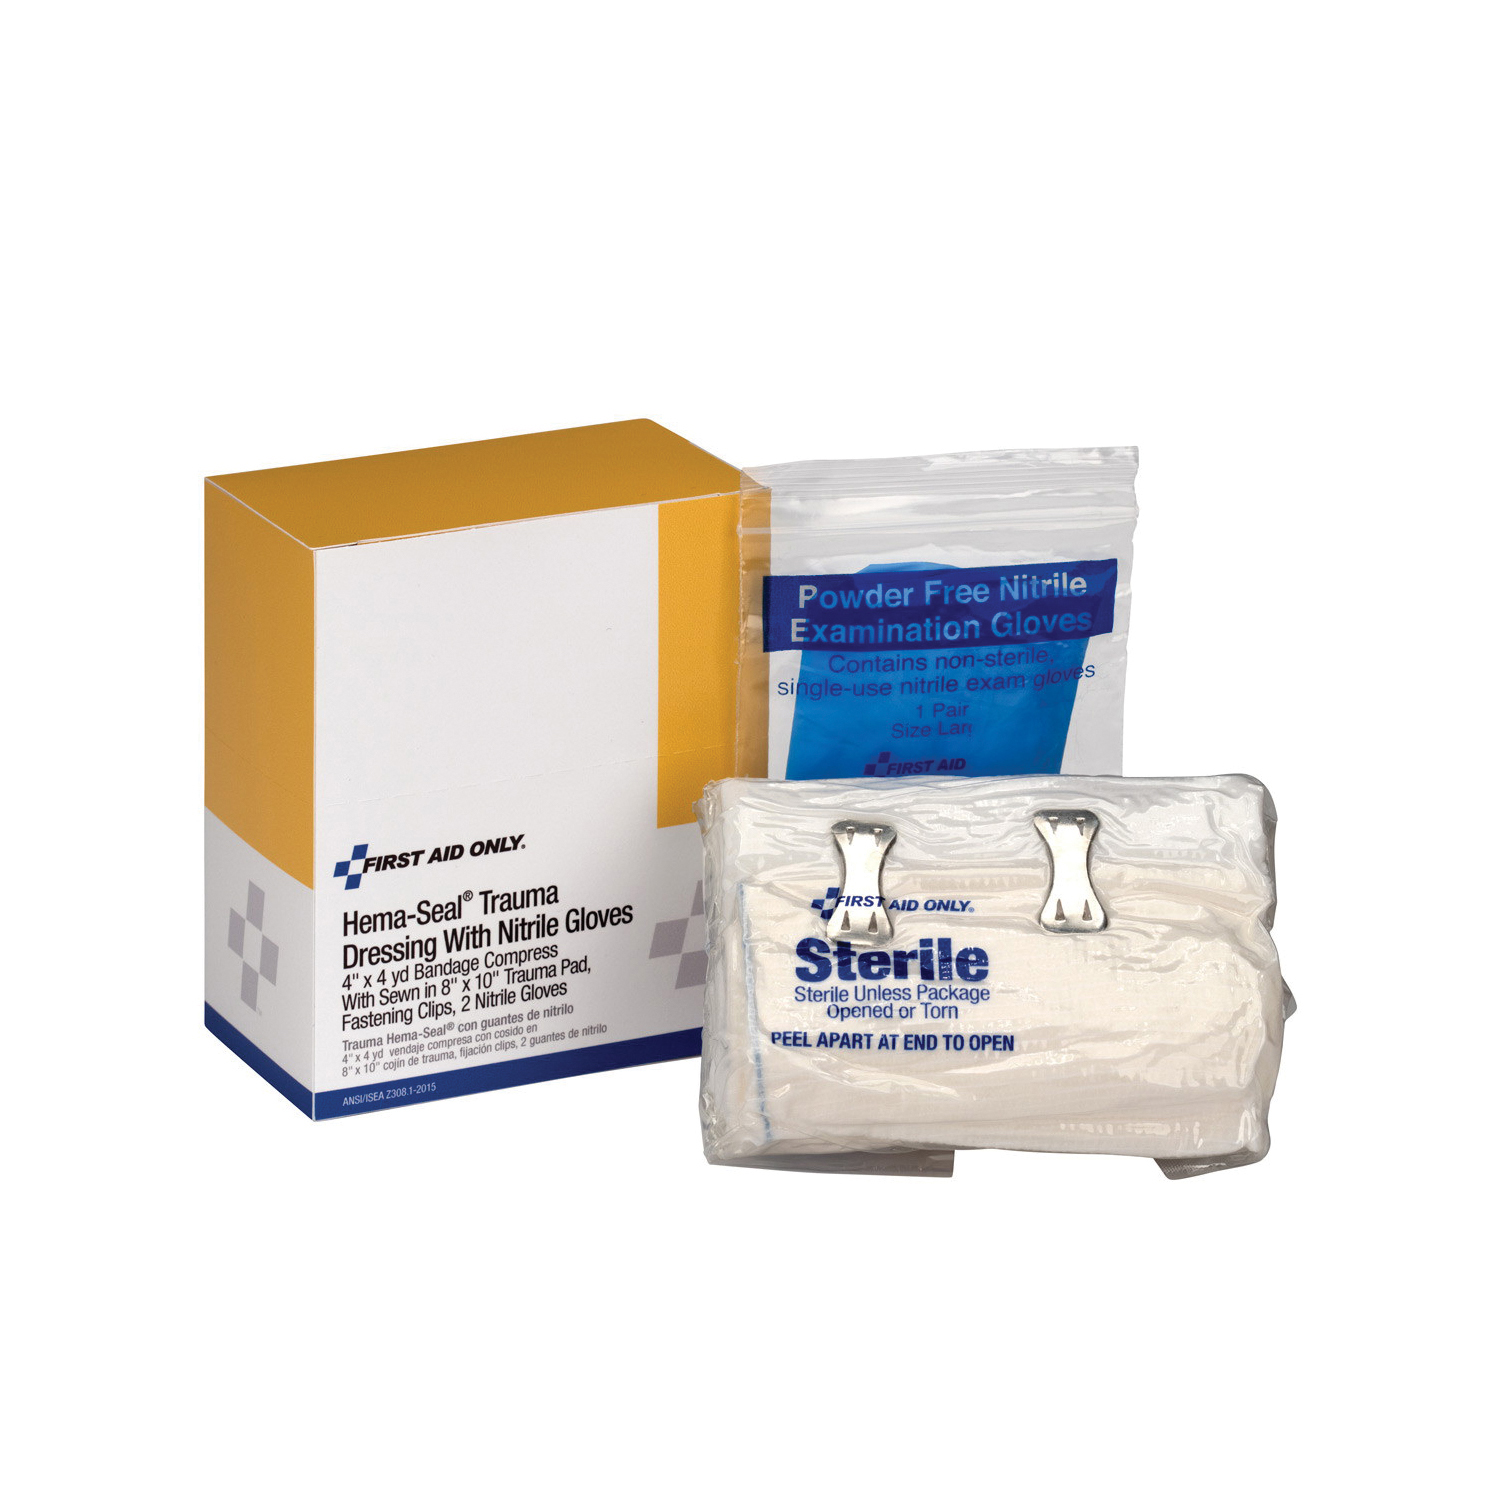 First Aid Only® 2-014 Hema-Seal® Trauma Dressing